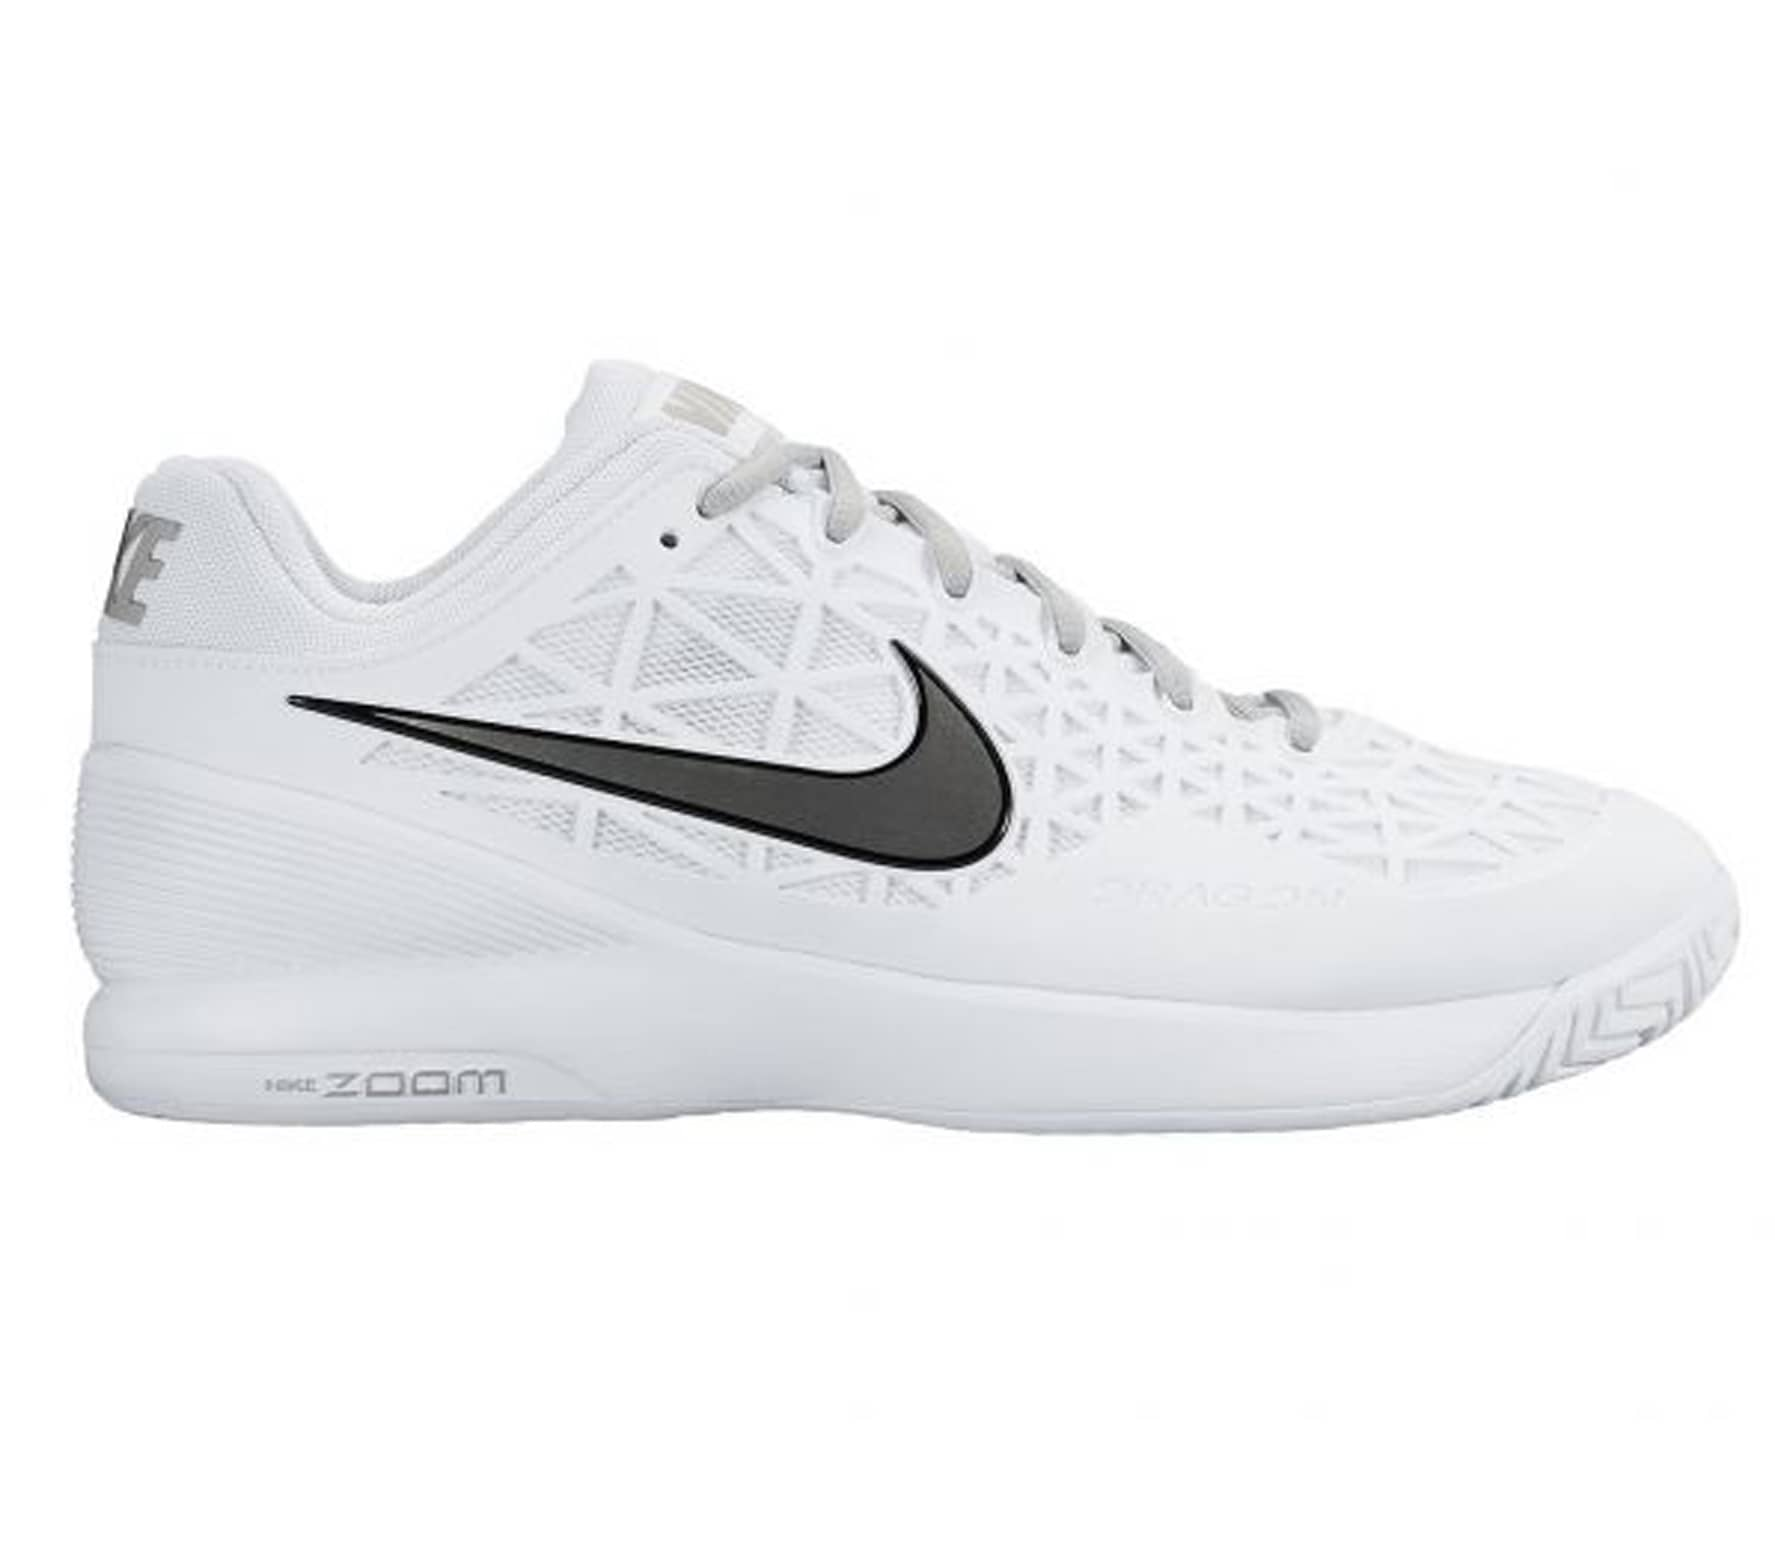 info for 7df05 76266 Nike - Zoom Cage 2 Dam tennis Shoe (vit silver)